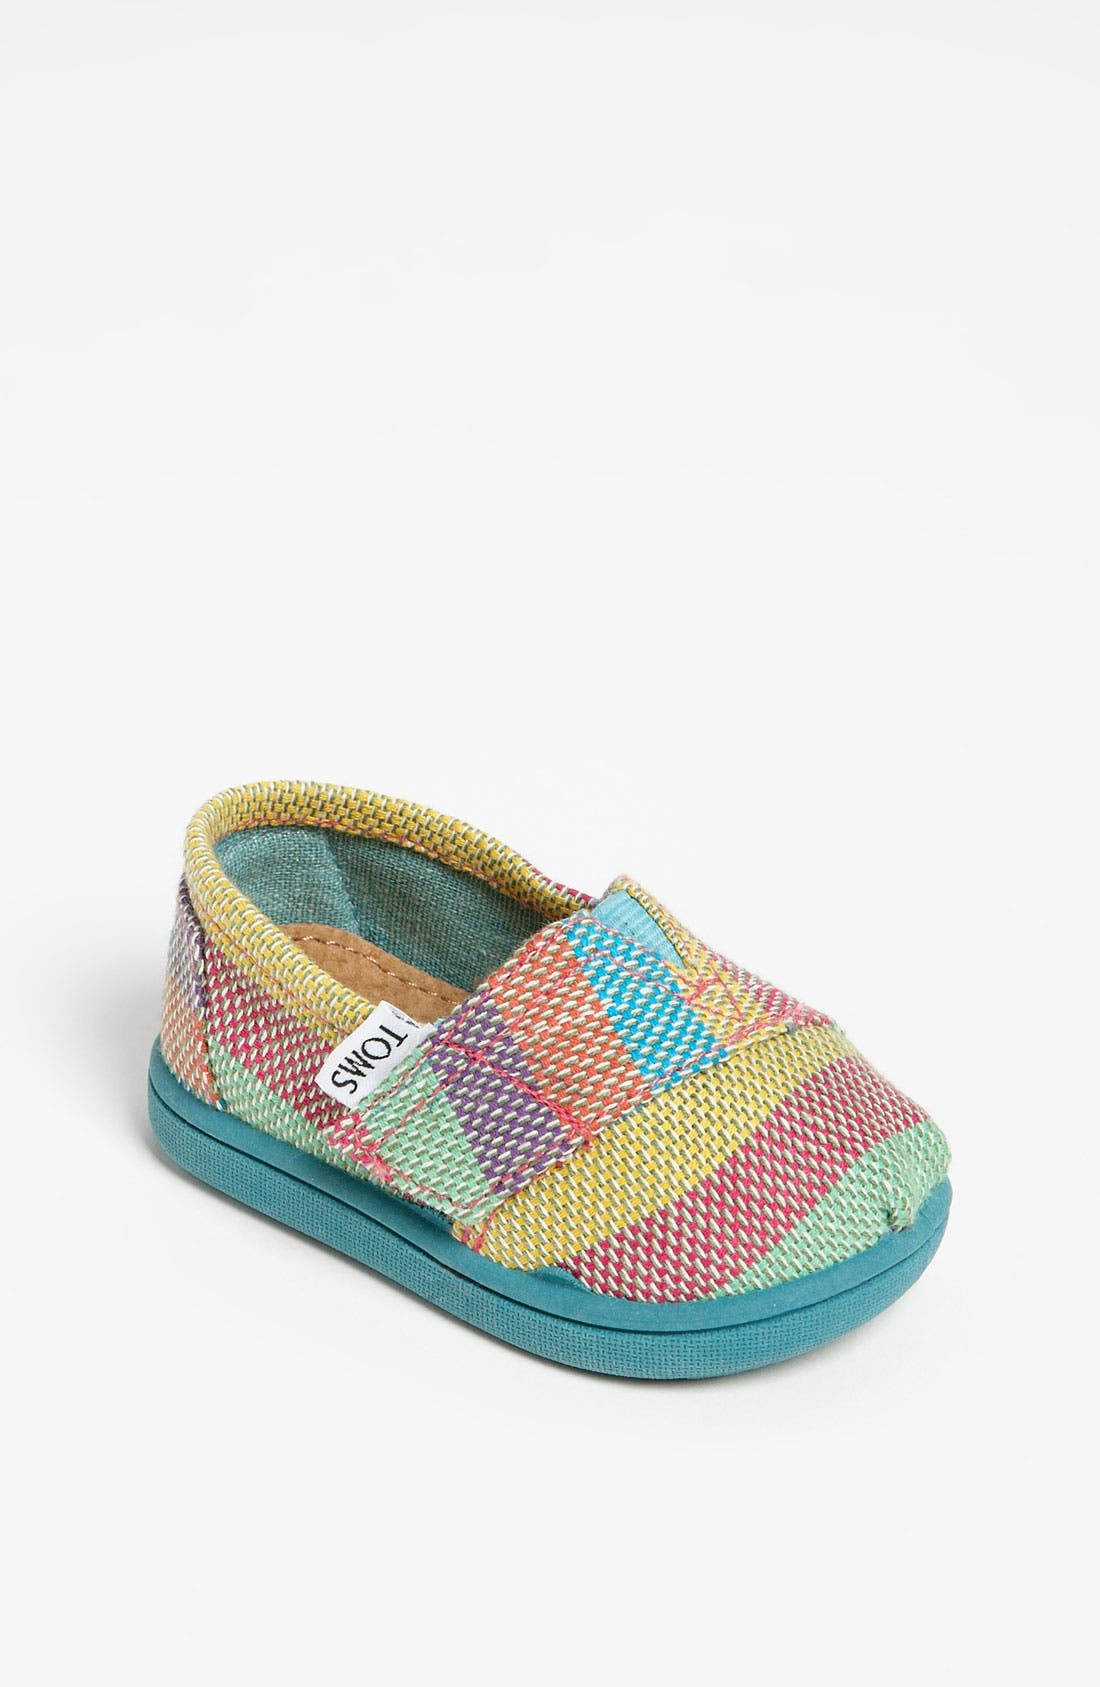 Alternate Image 1 Selected - TOMS 'Classic - Tiny' Plaid Slip-On (Baby, Walker & Toddler)